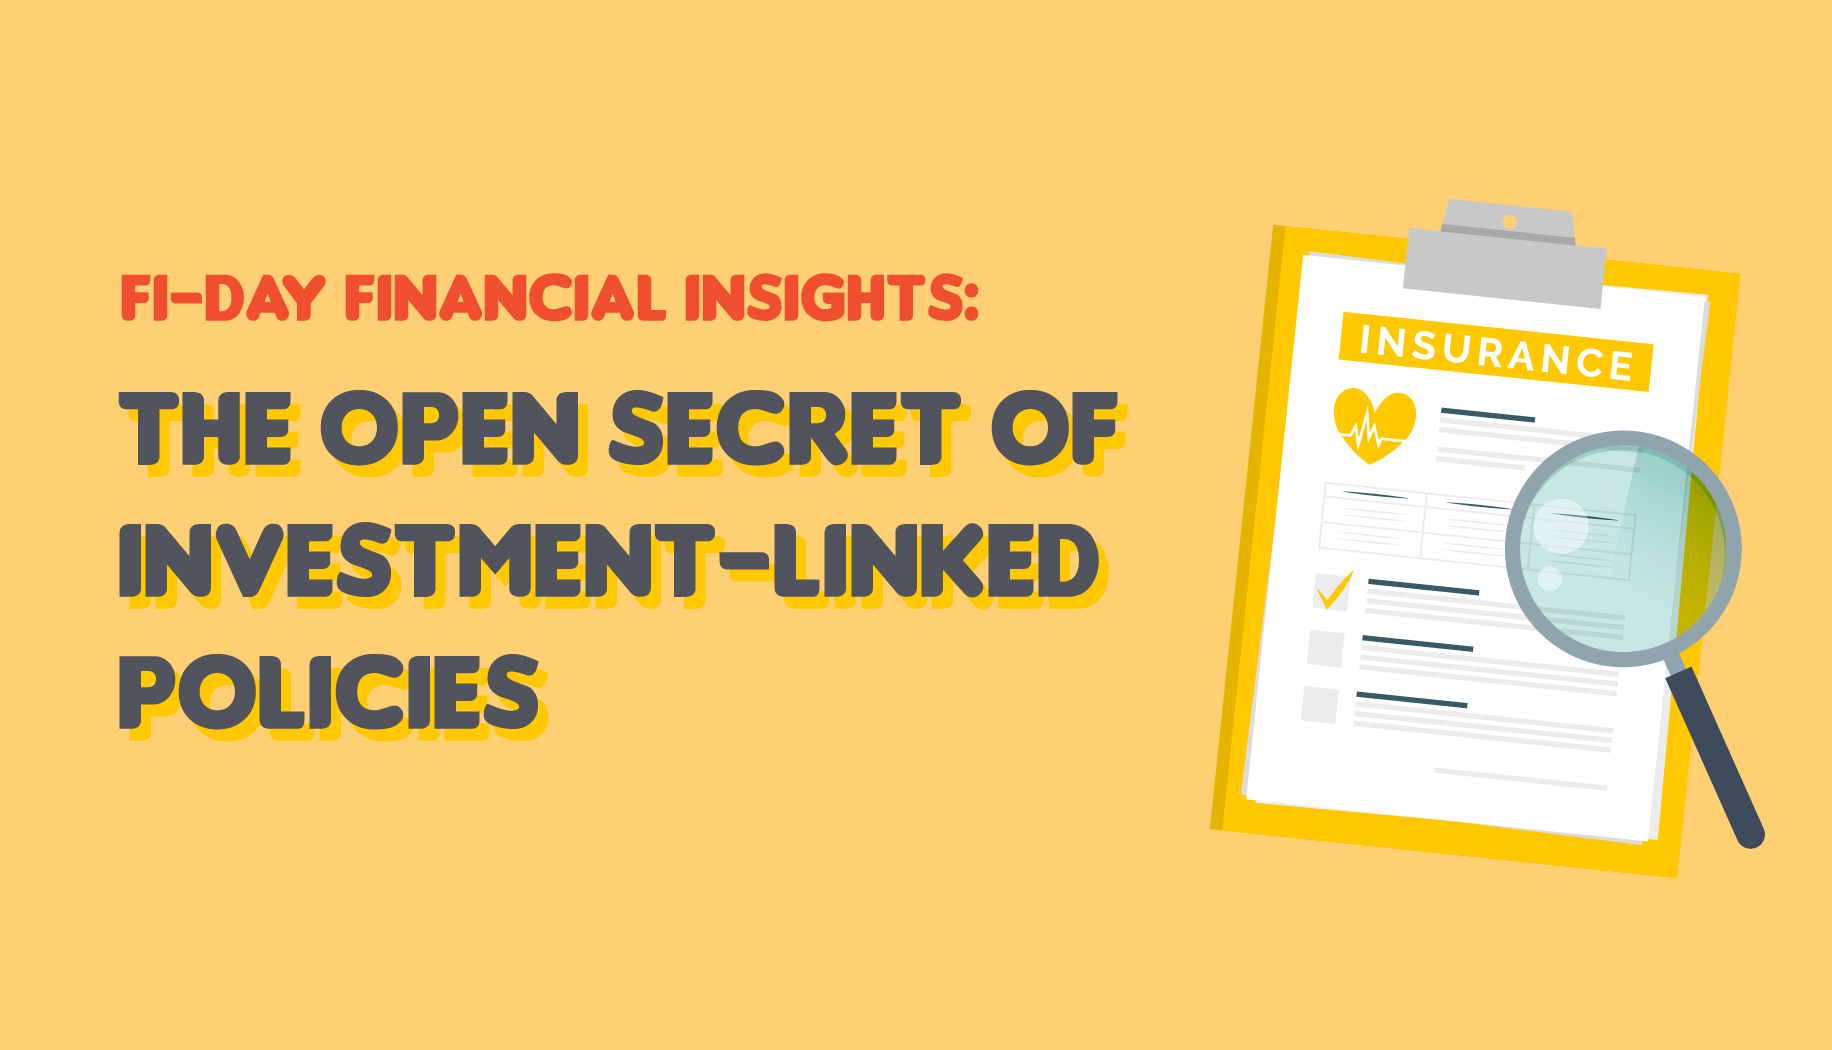 The Open Secret of Investment-Linked Policies